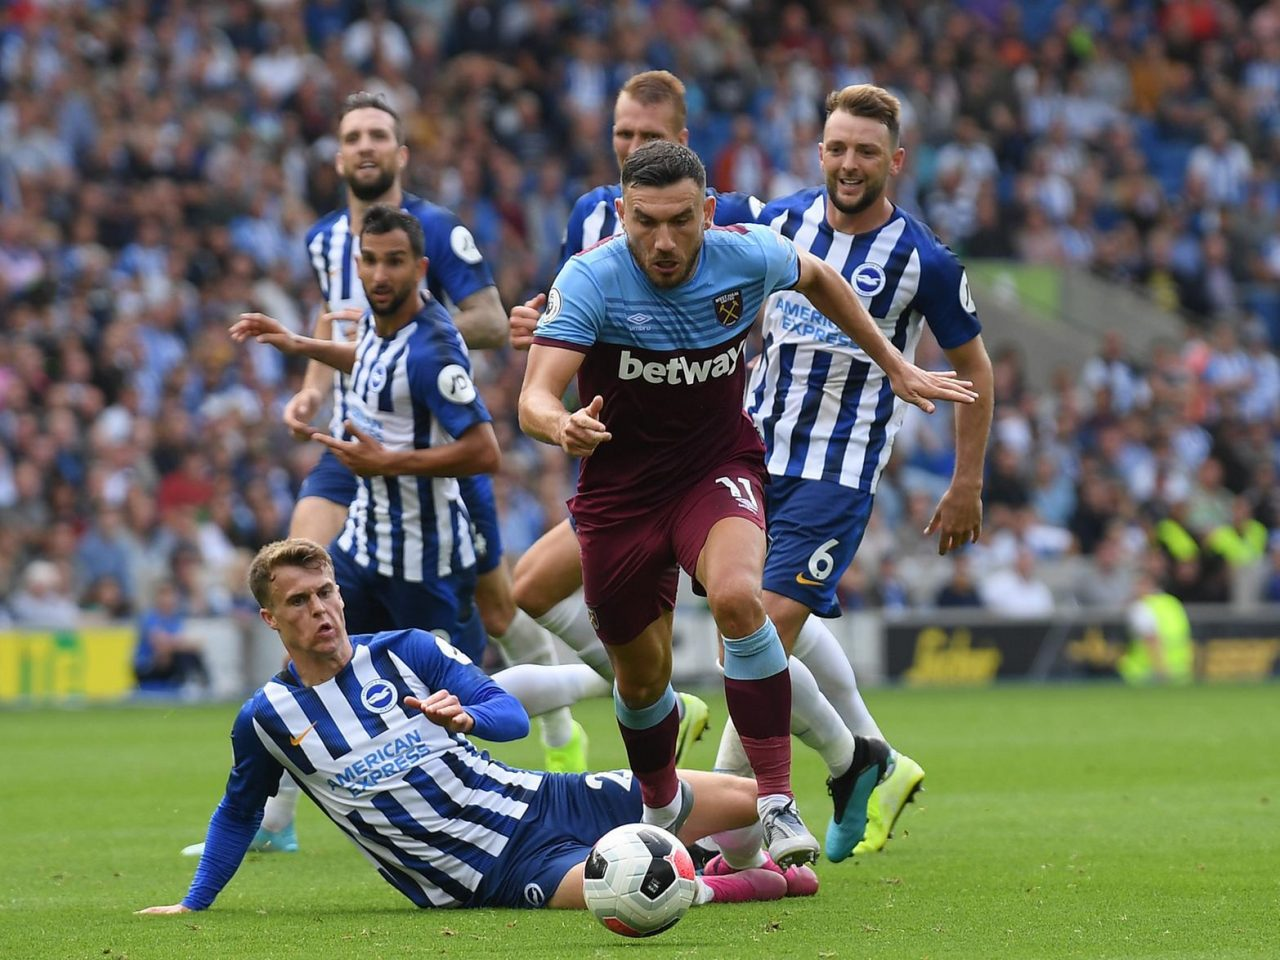 West Ham vs Brighton Free Betting Tips